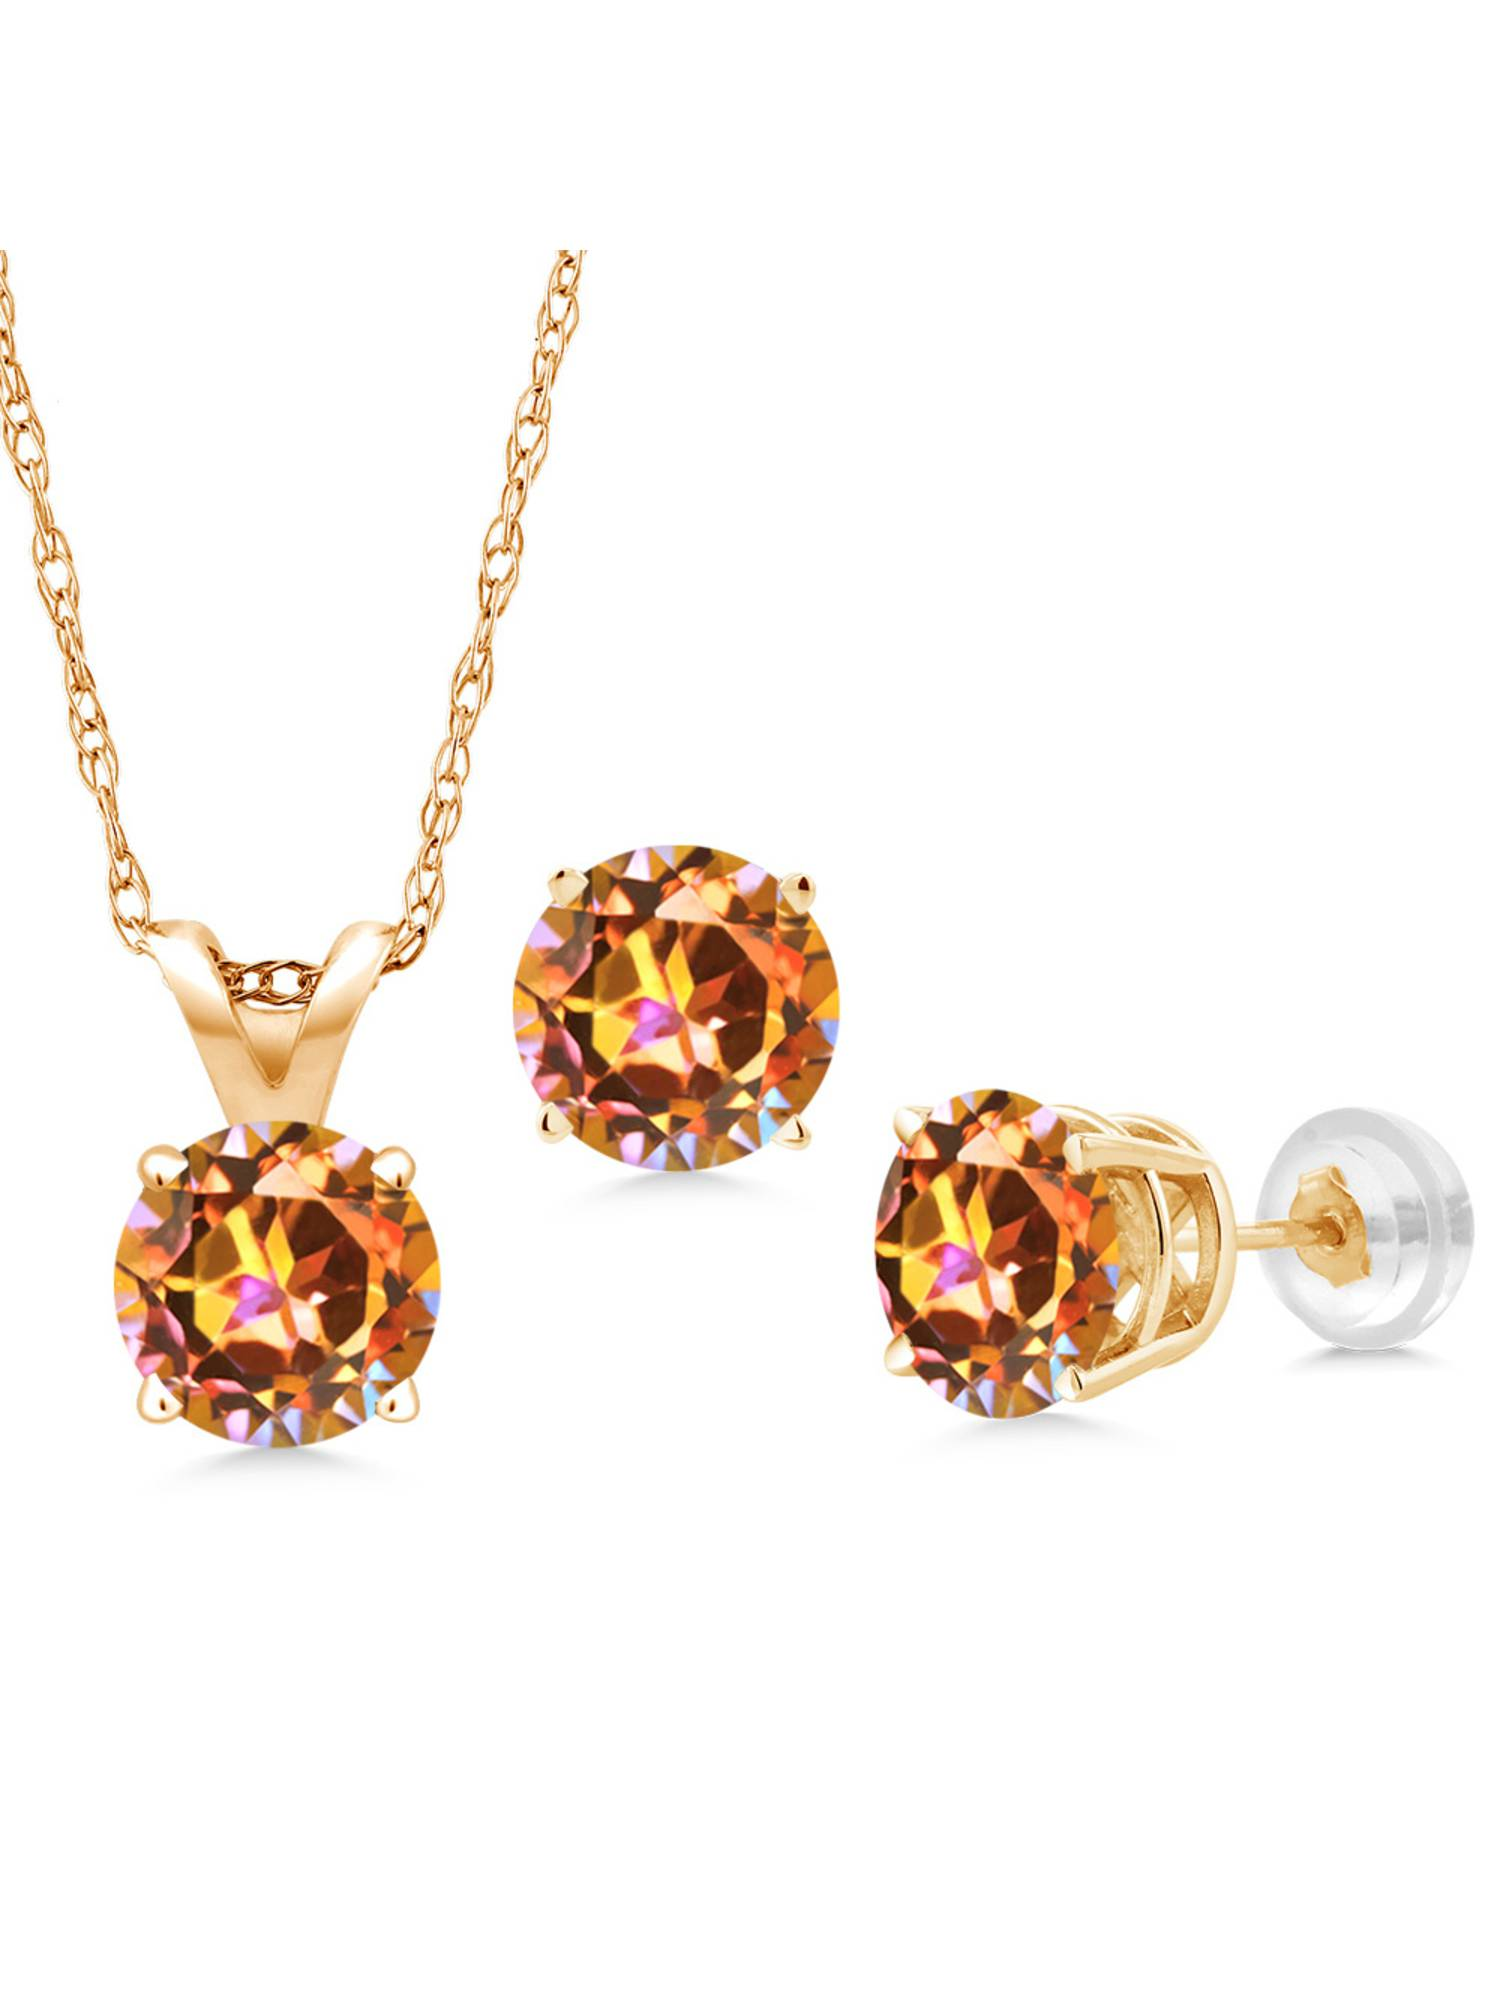 3.00 Ct Ecstasy Mystic Topaz 14K Yellow Gold Pendant Earrings Set With Chain